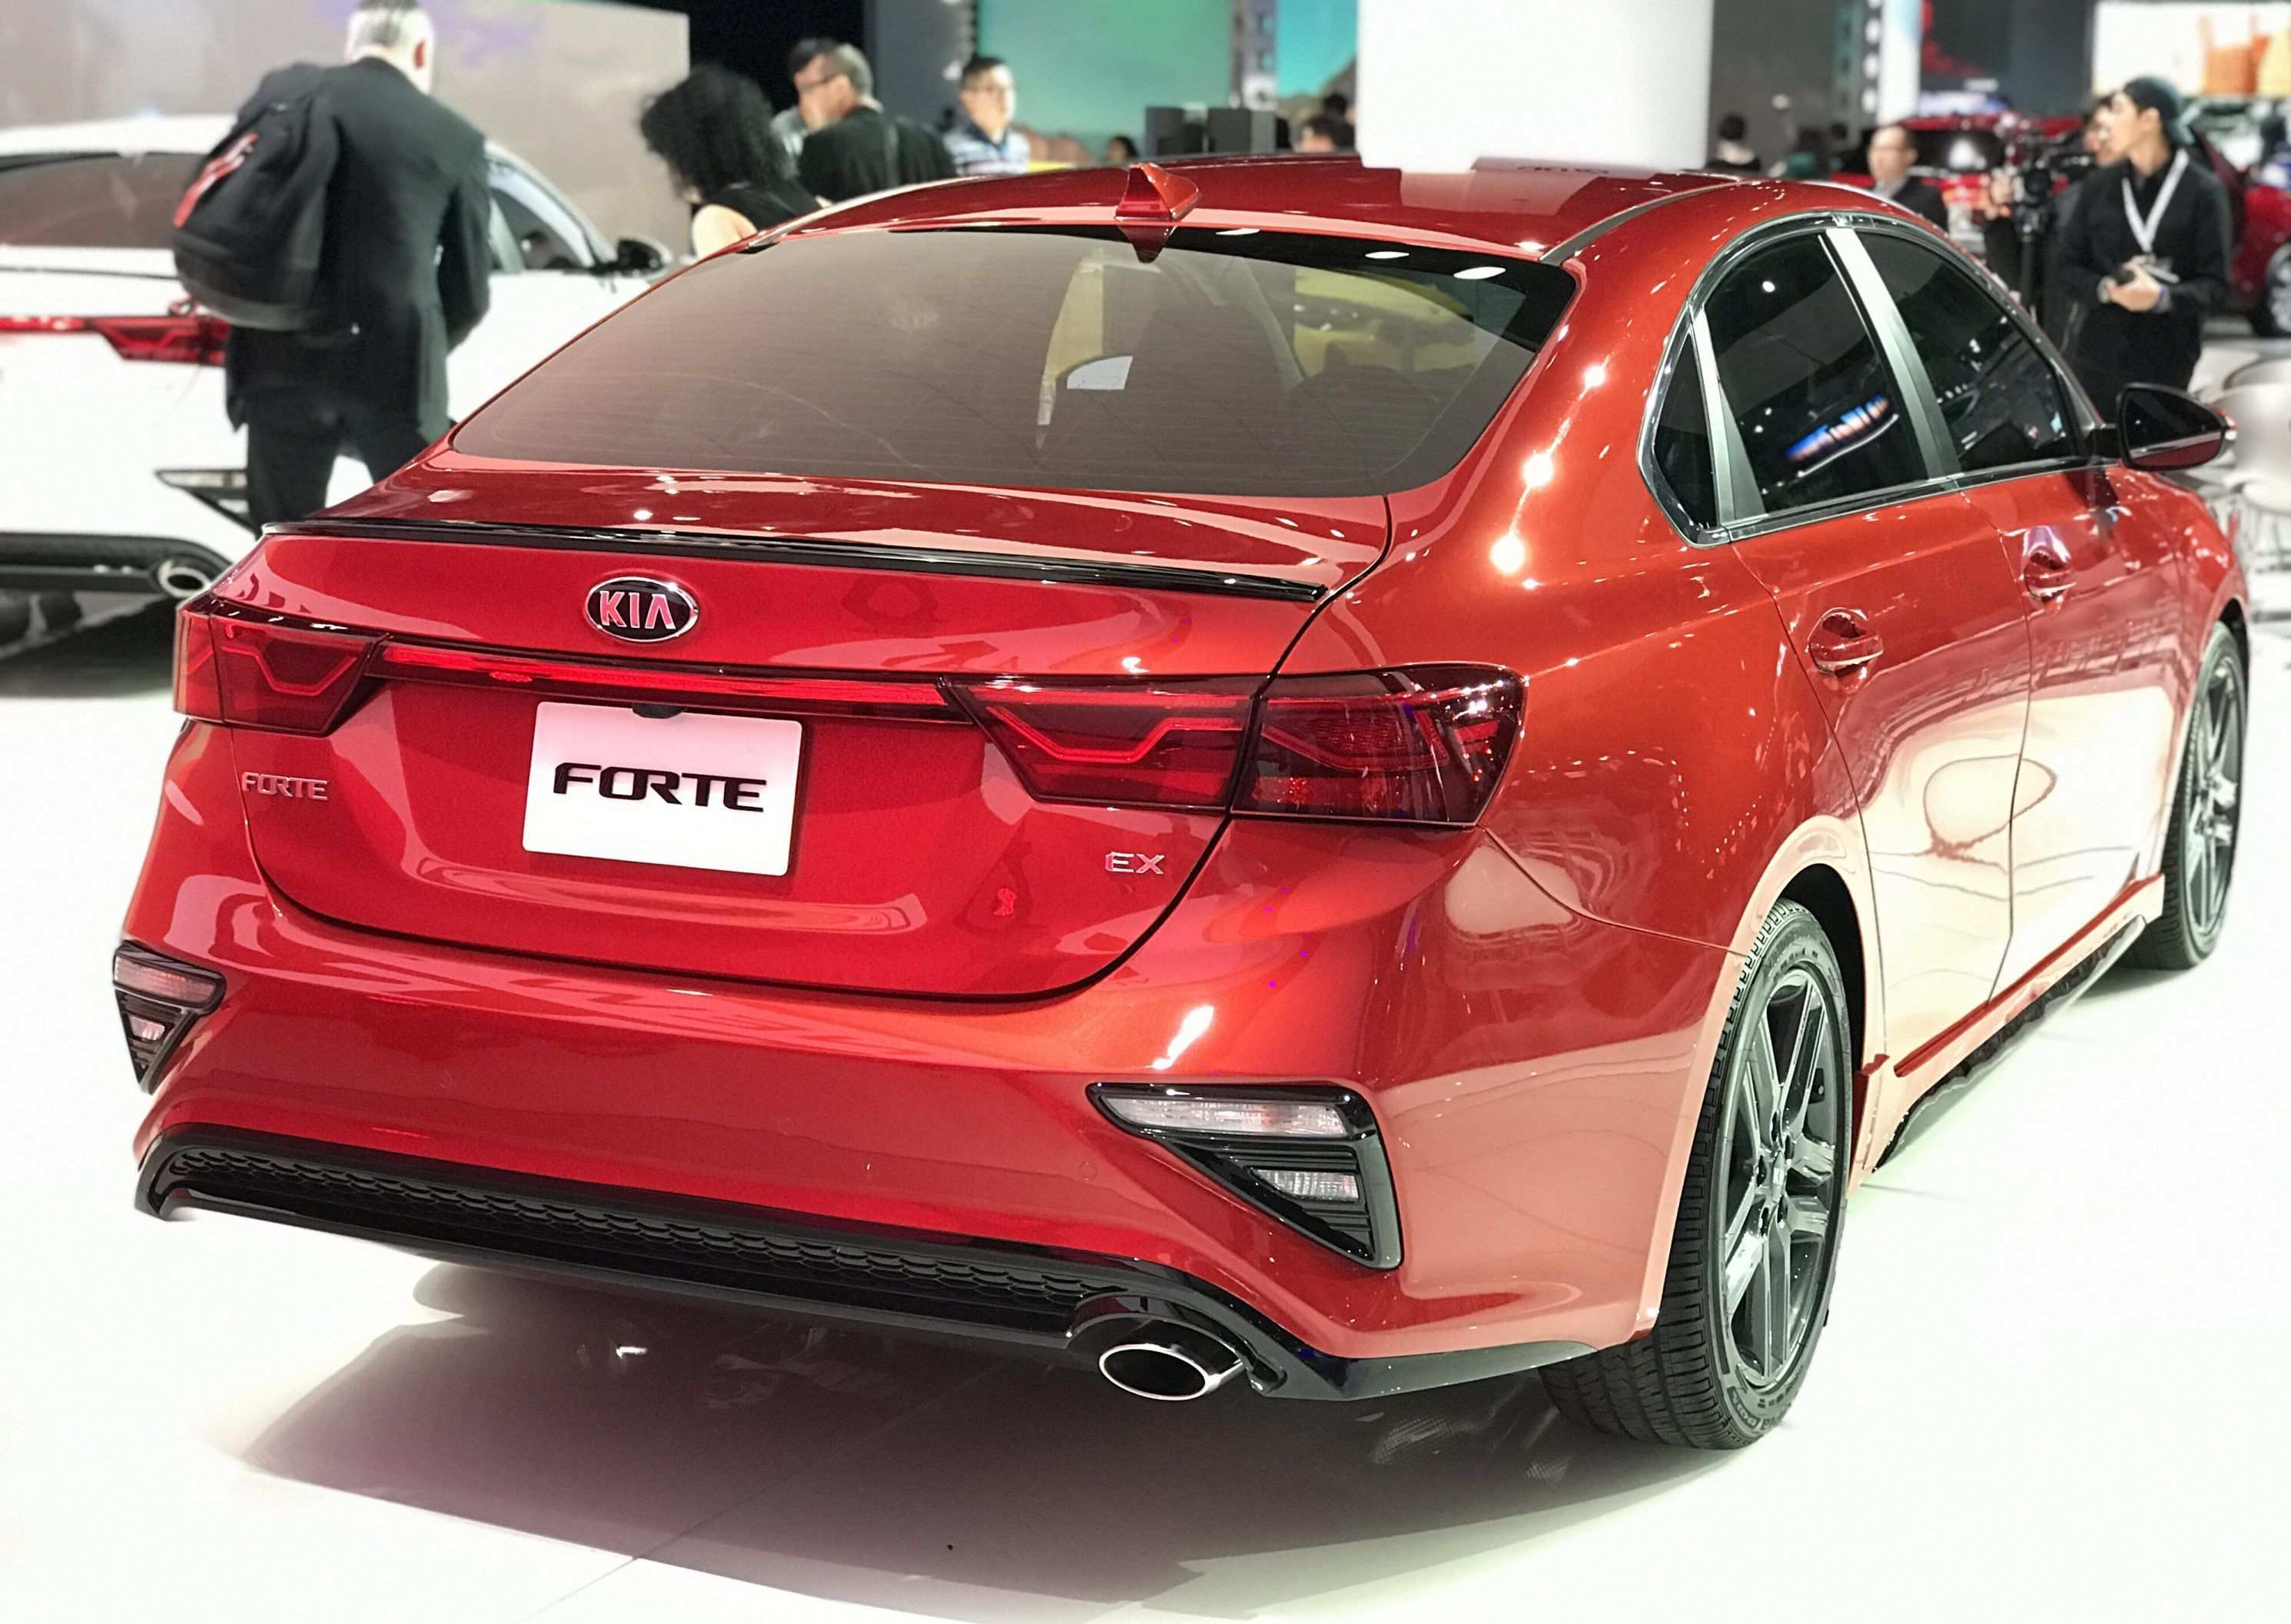 97 All New Kia Forte Koup 2019 Research New